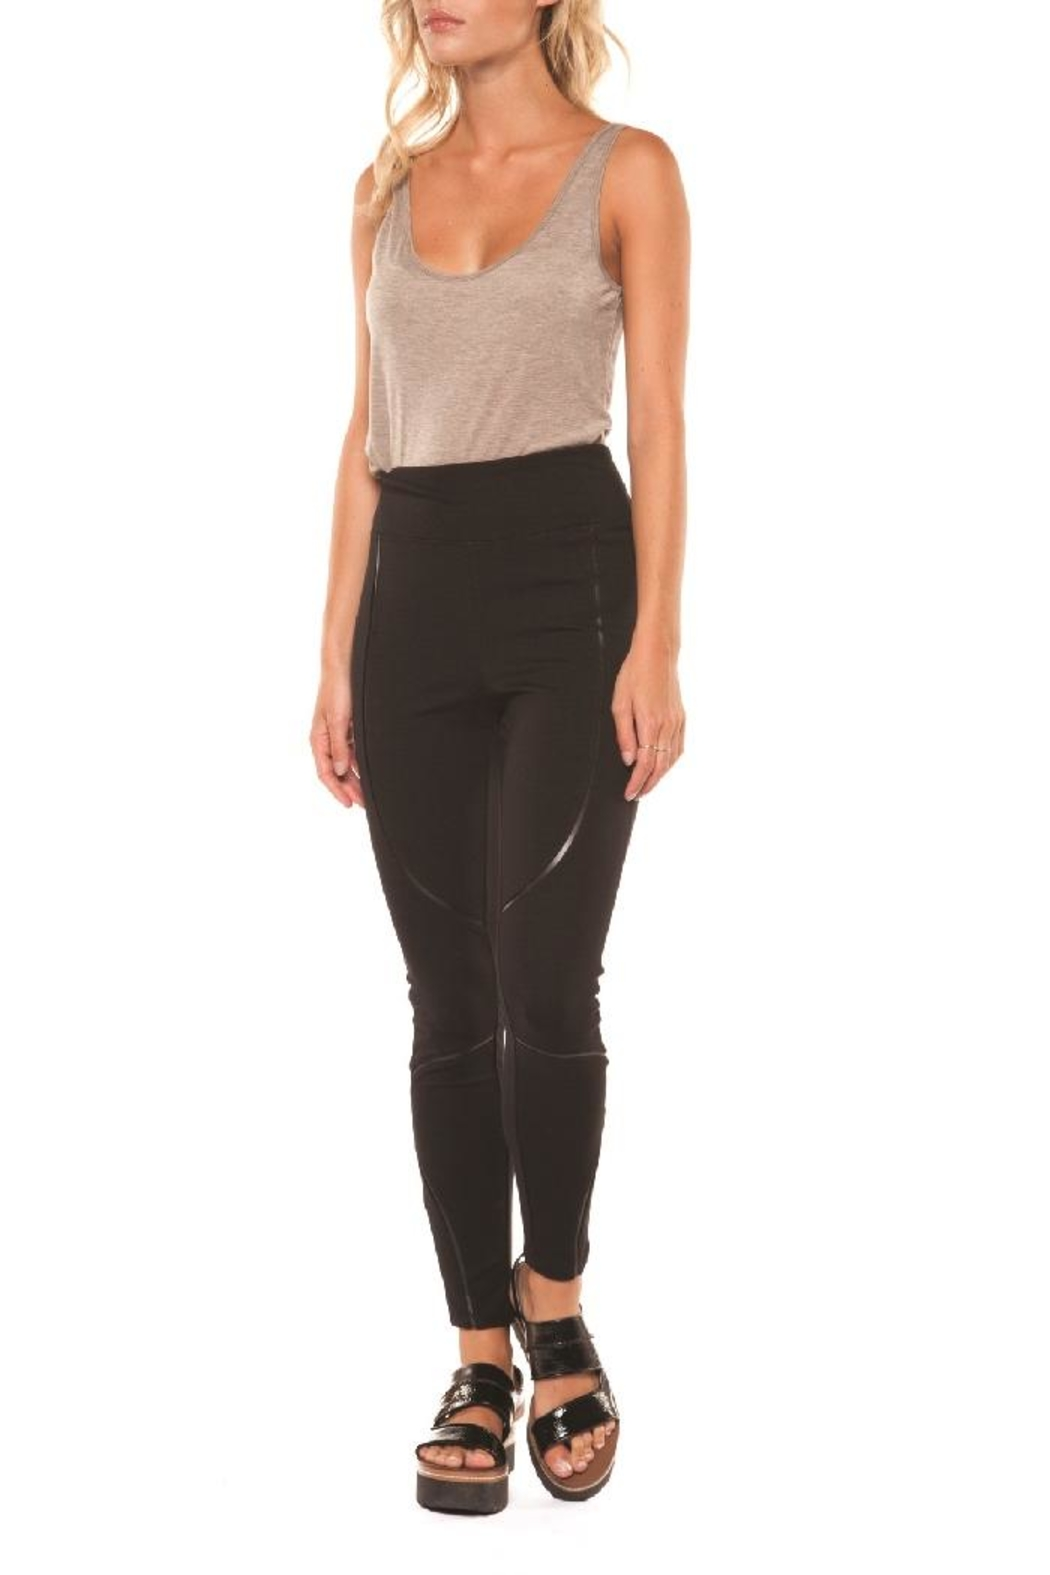 Dex/Black Tape Leggings W/inserts - Front Cropped Image